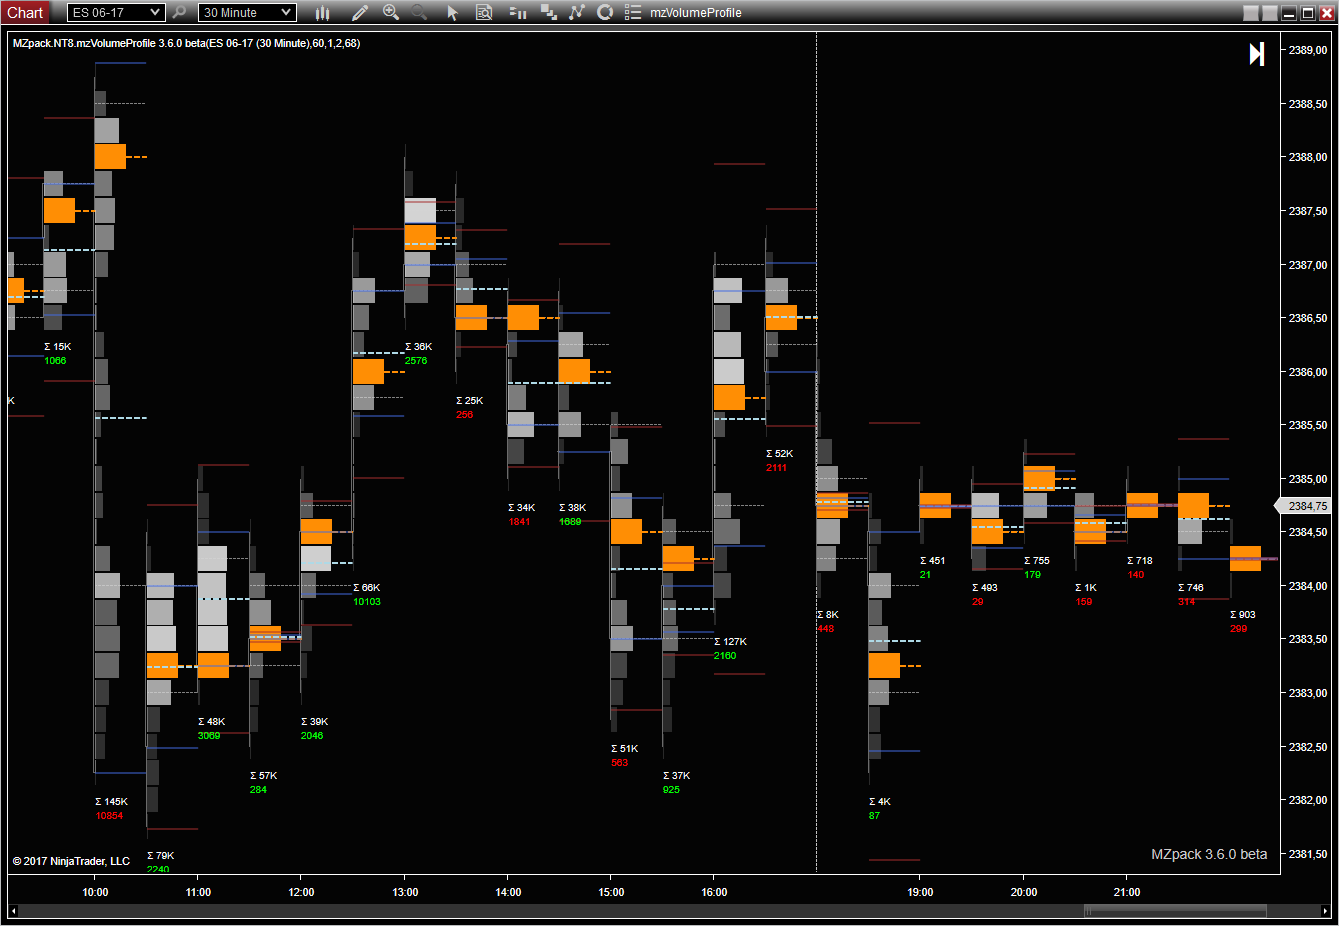 mzpack-periodic-bar-volume-profile-for-ninjatrader-8